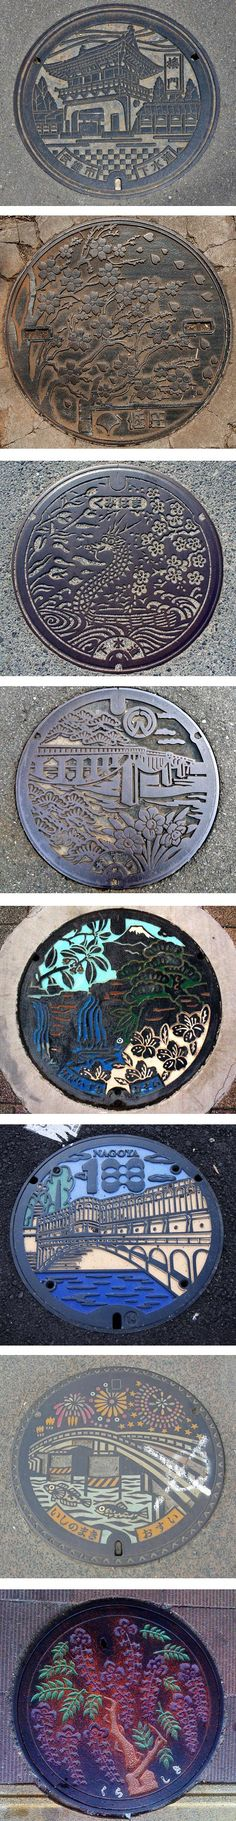 Japanese Manhole Covers ~ In Japan a large number of municipalities use these utility opening covers to express their local identity, with decorative covers that portray local landmarks, plants, animals, festivals and other elements of cultural or civic import. There is an extensive Flickr group devoted to them, and a book on the appreciation of them called Drainspotting.